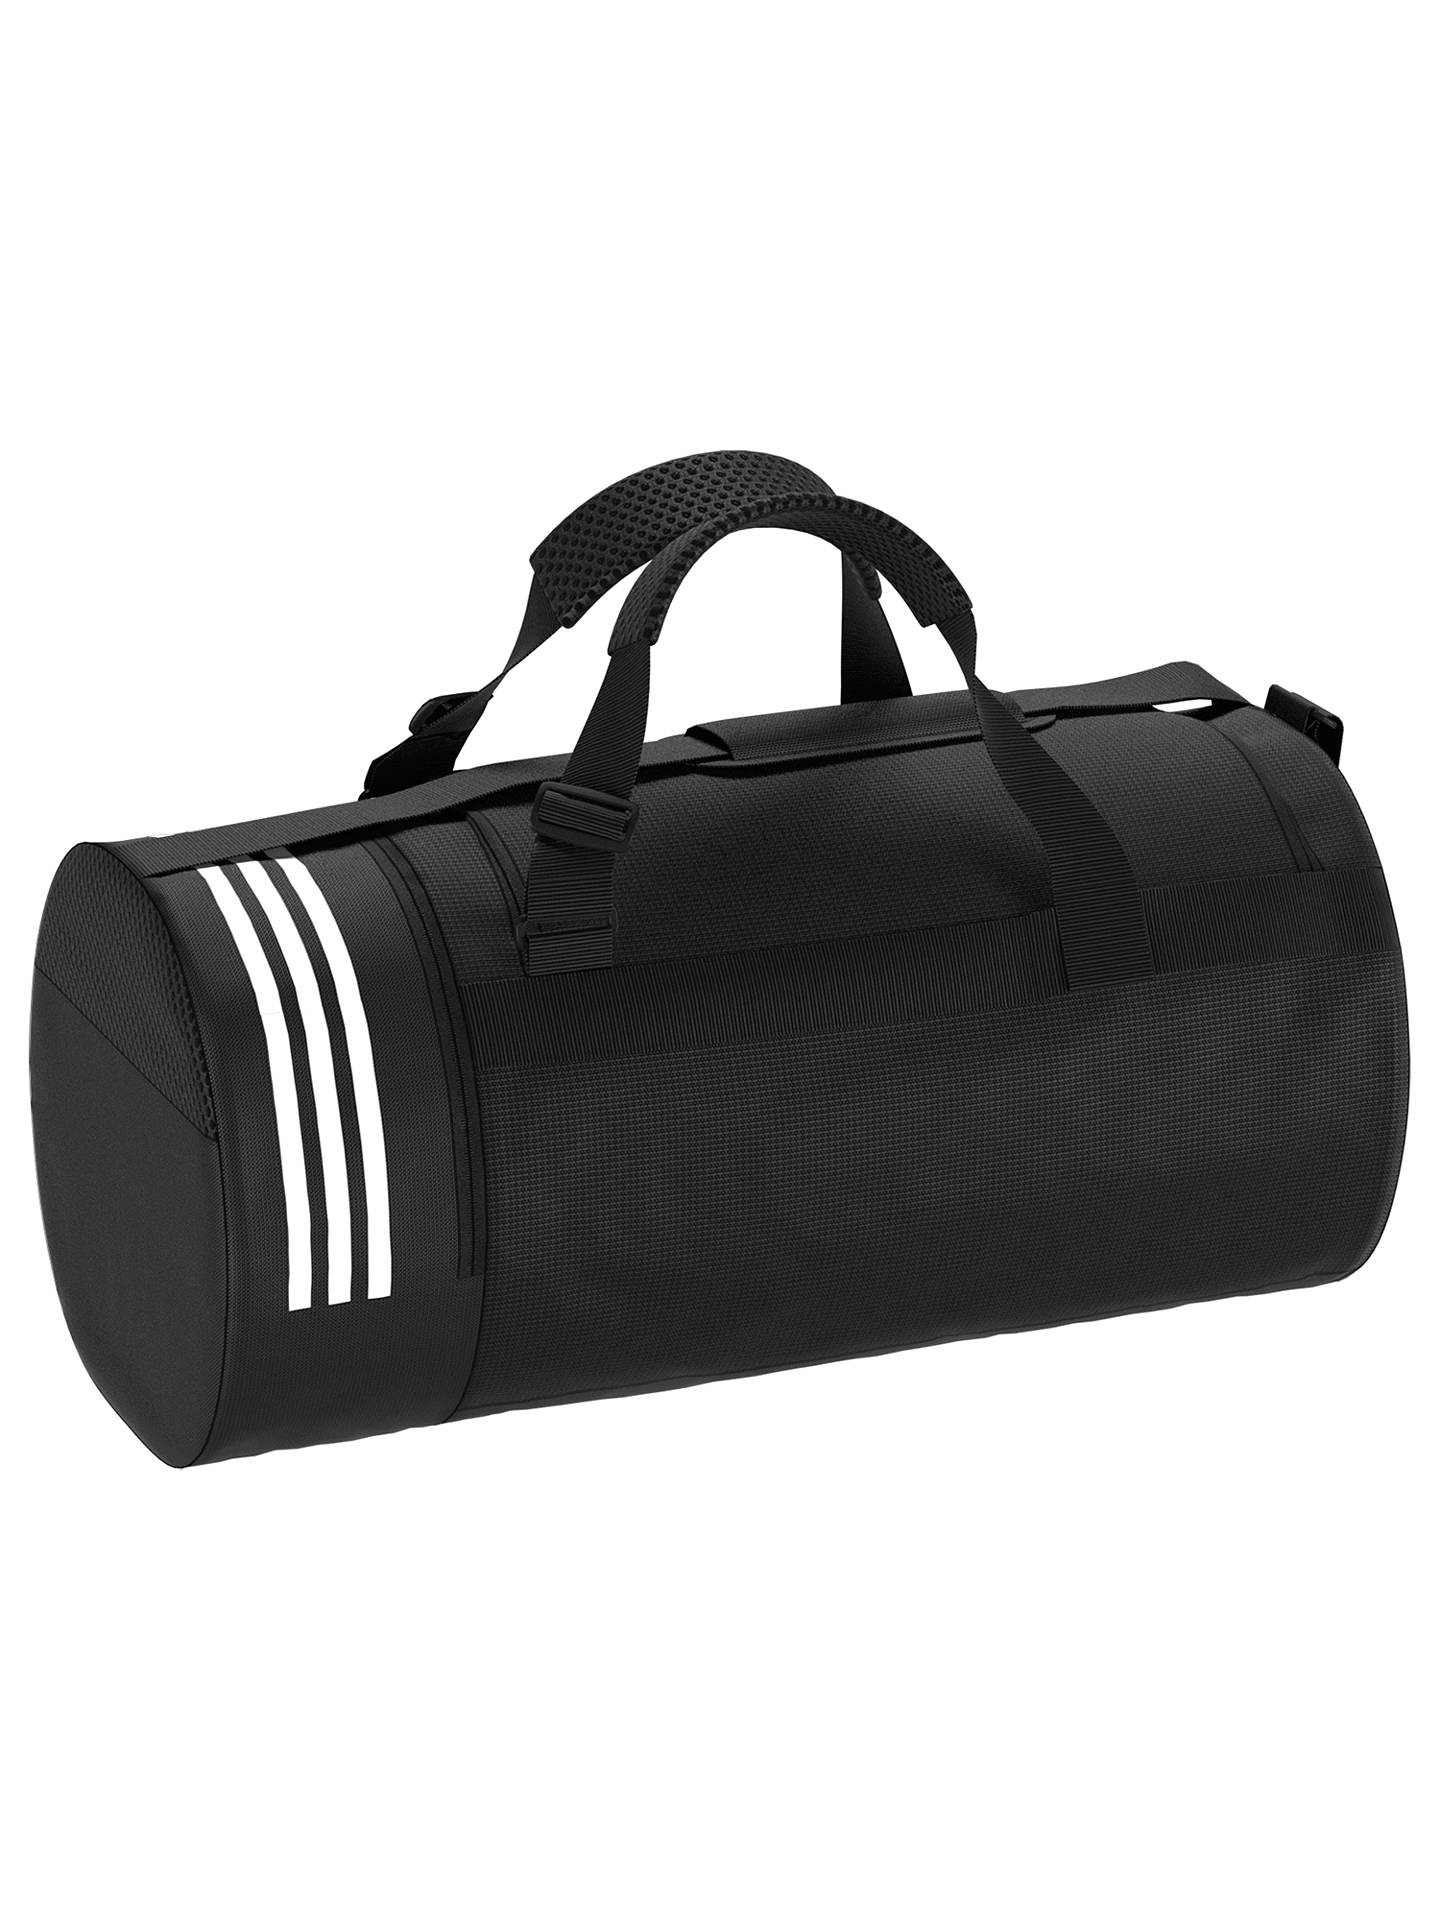 d15c4820654 Buy adidas Convertible 3-Stripes Duffle Bag, Medium, Black Online at  johnlewis.